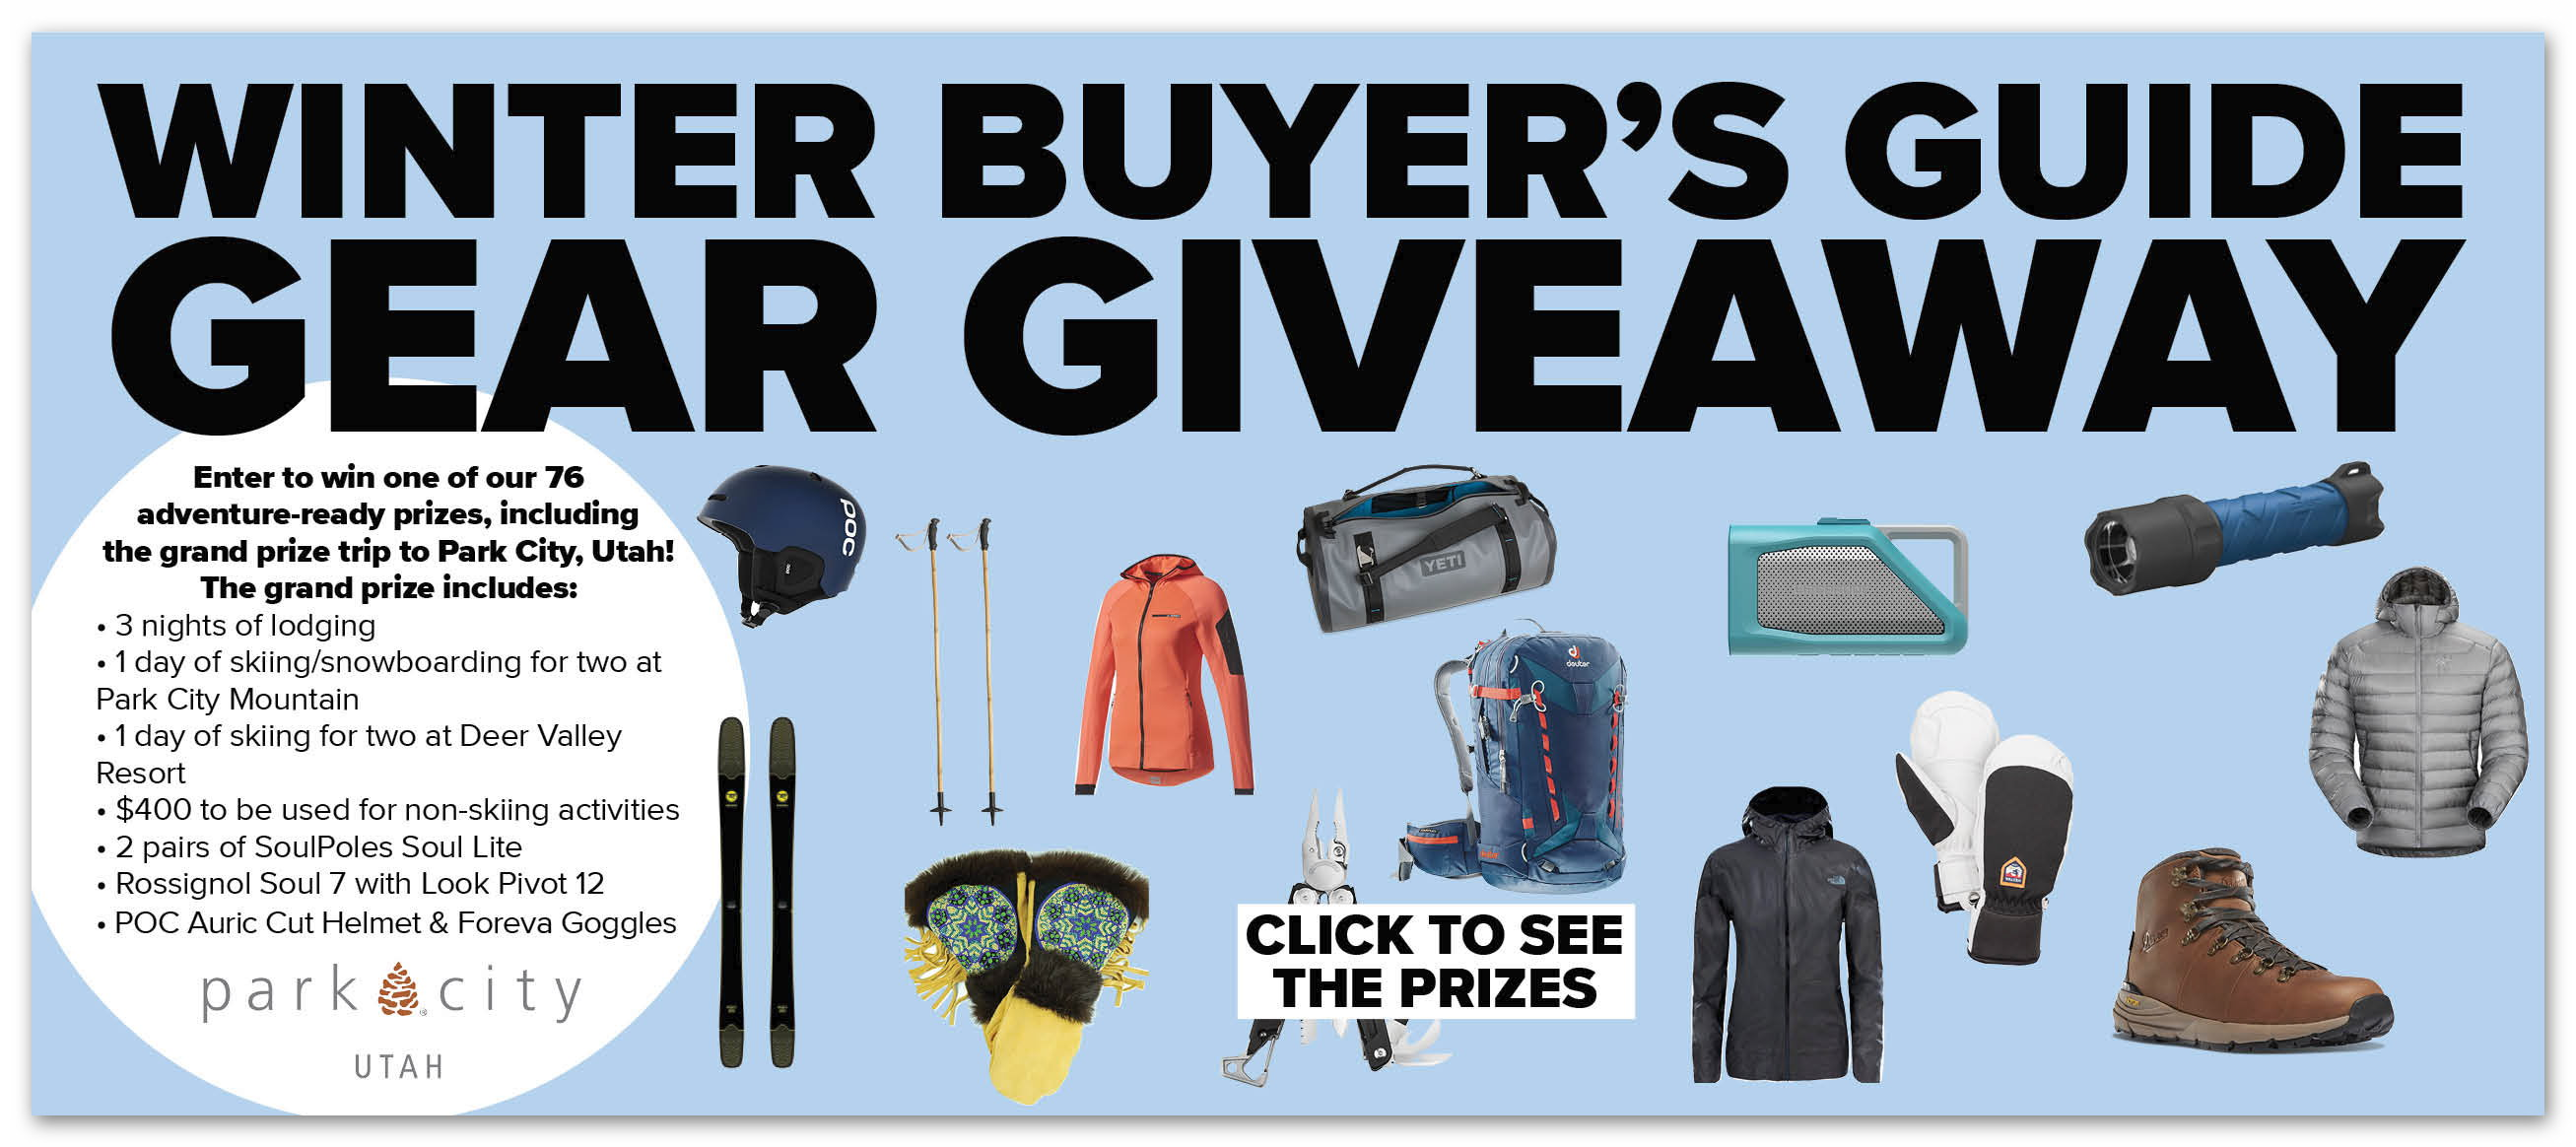 Outside Magazine Winter Buyer's Guide Sweepstakes